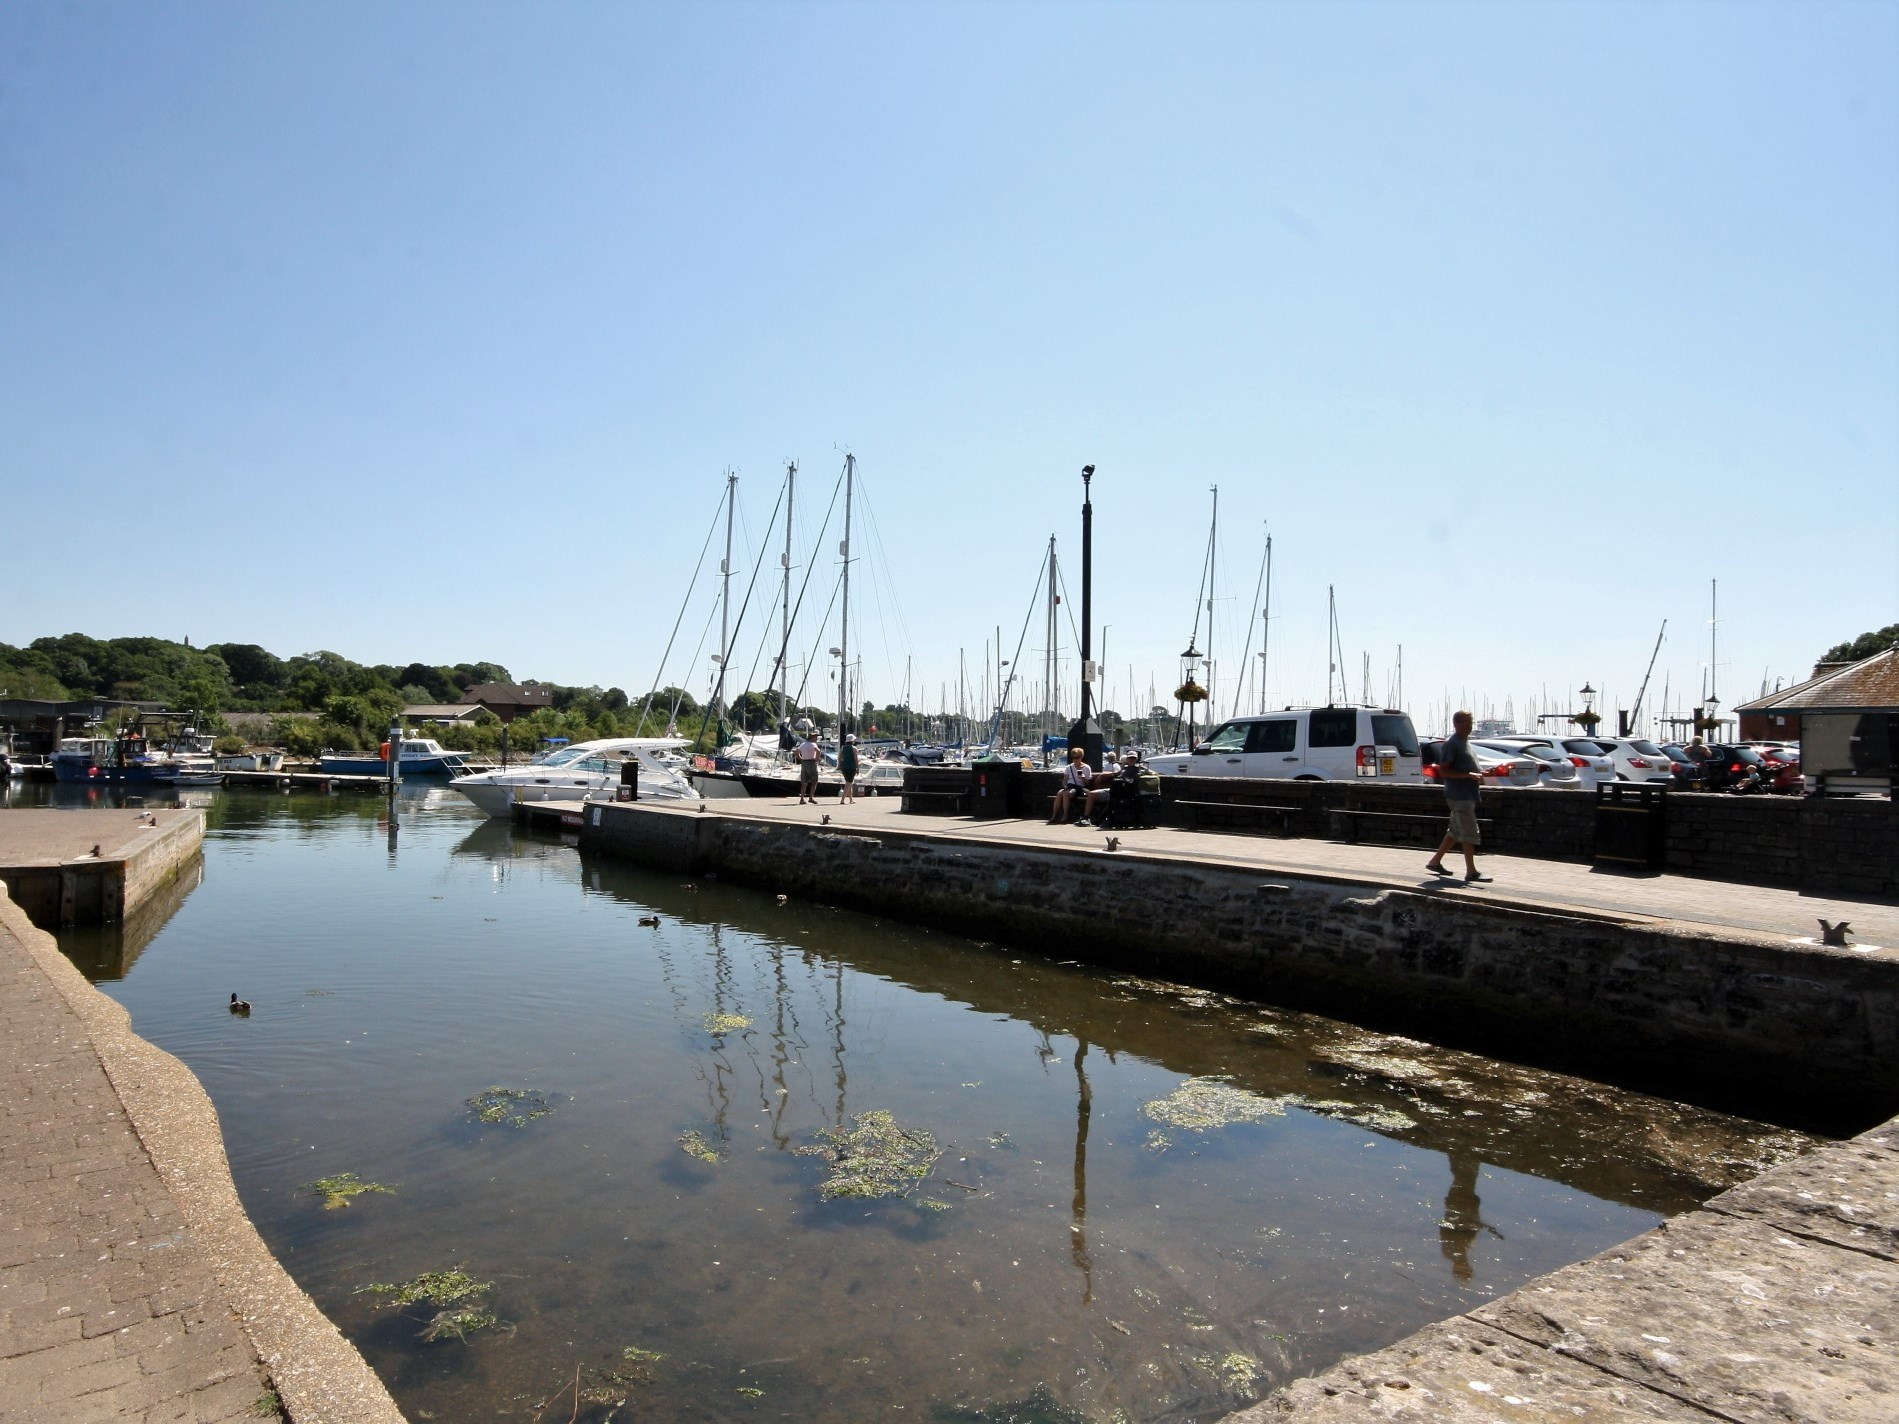 The property is located directly on the quay